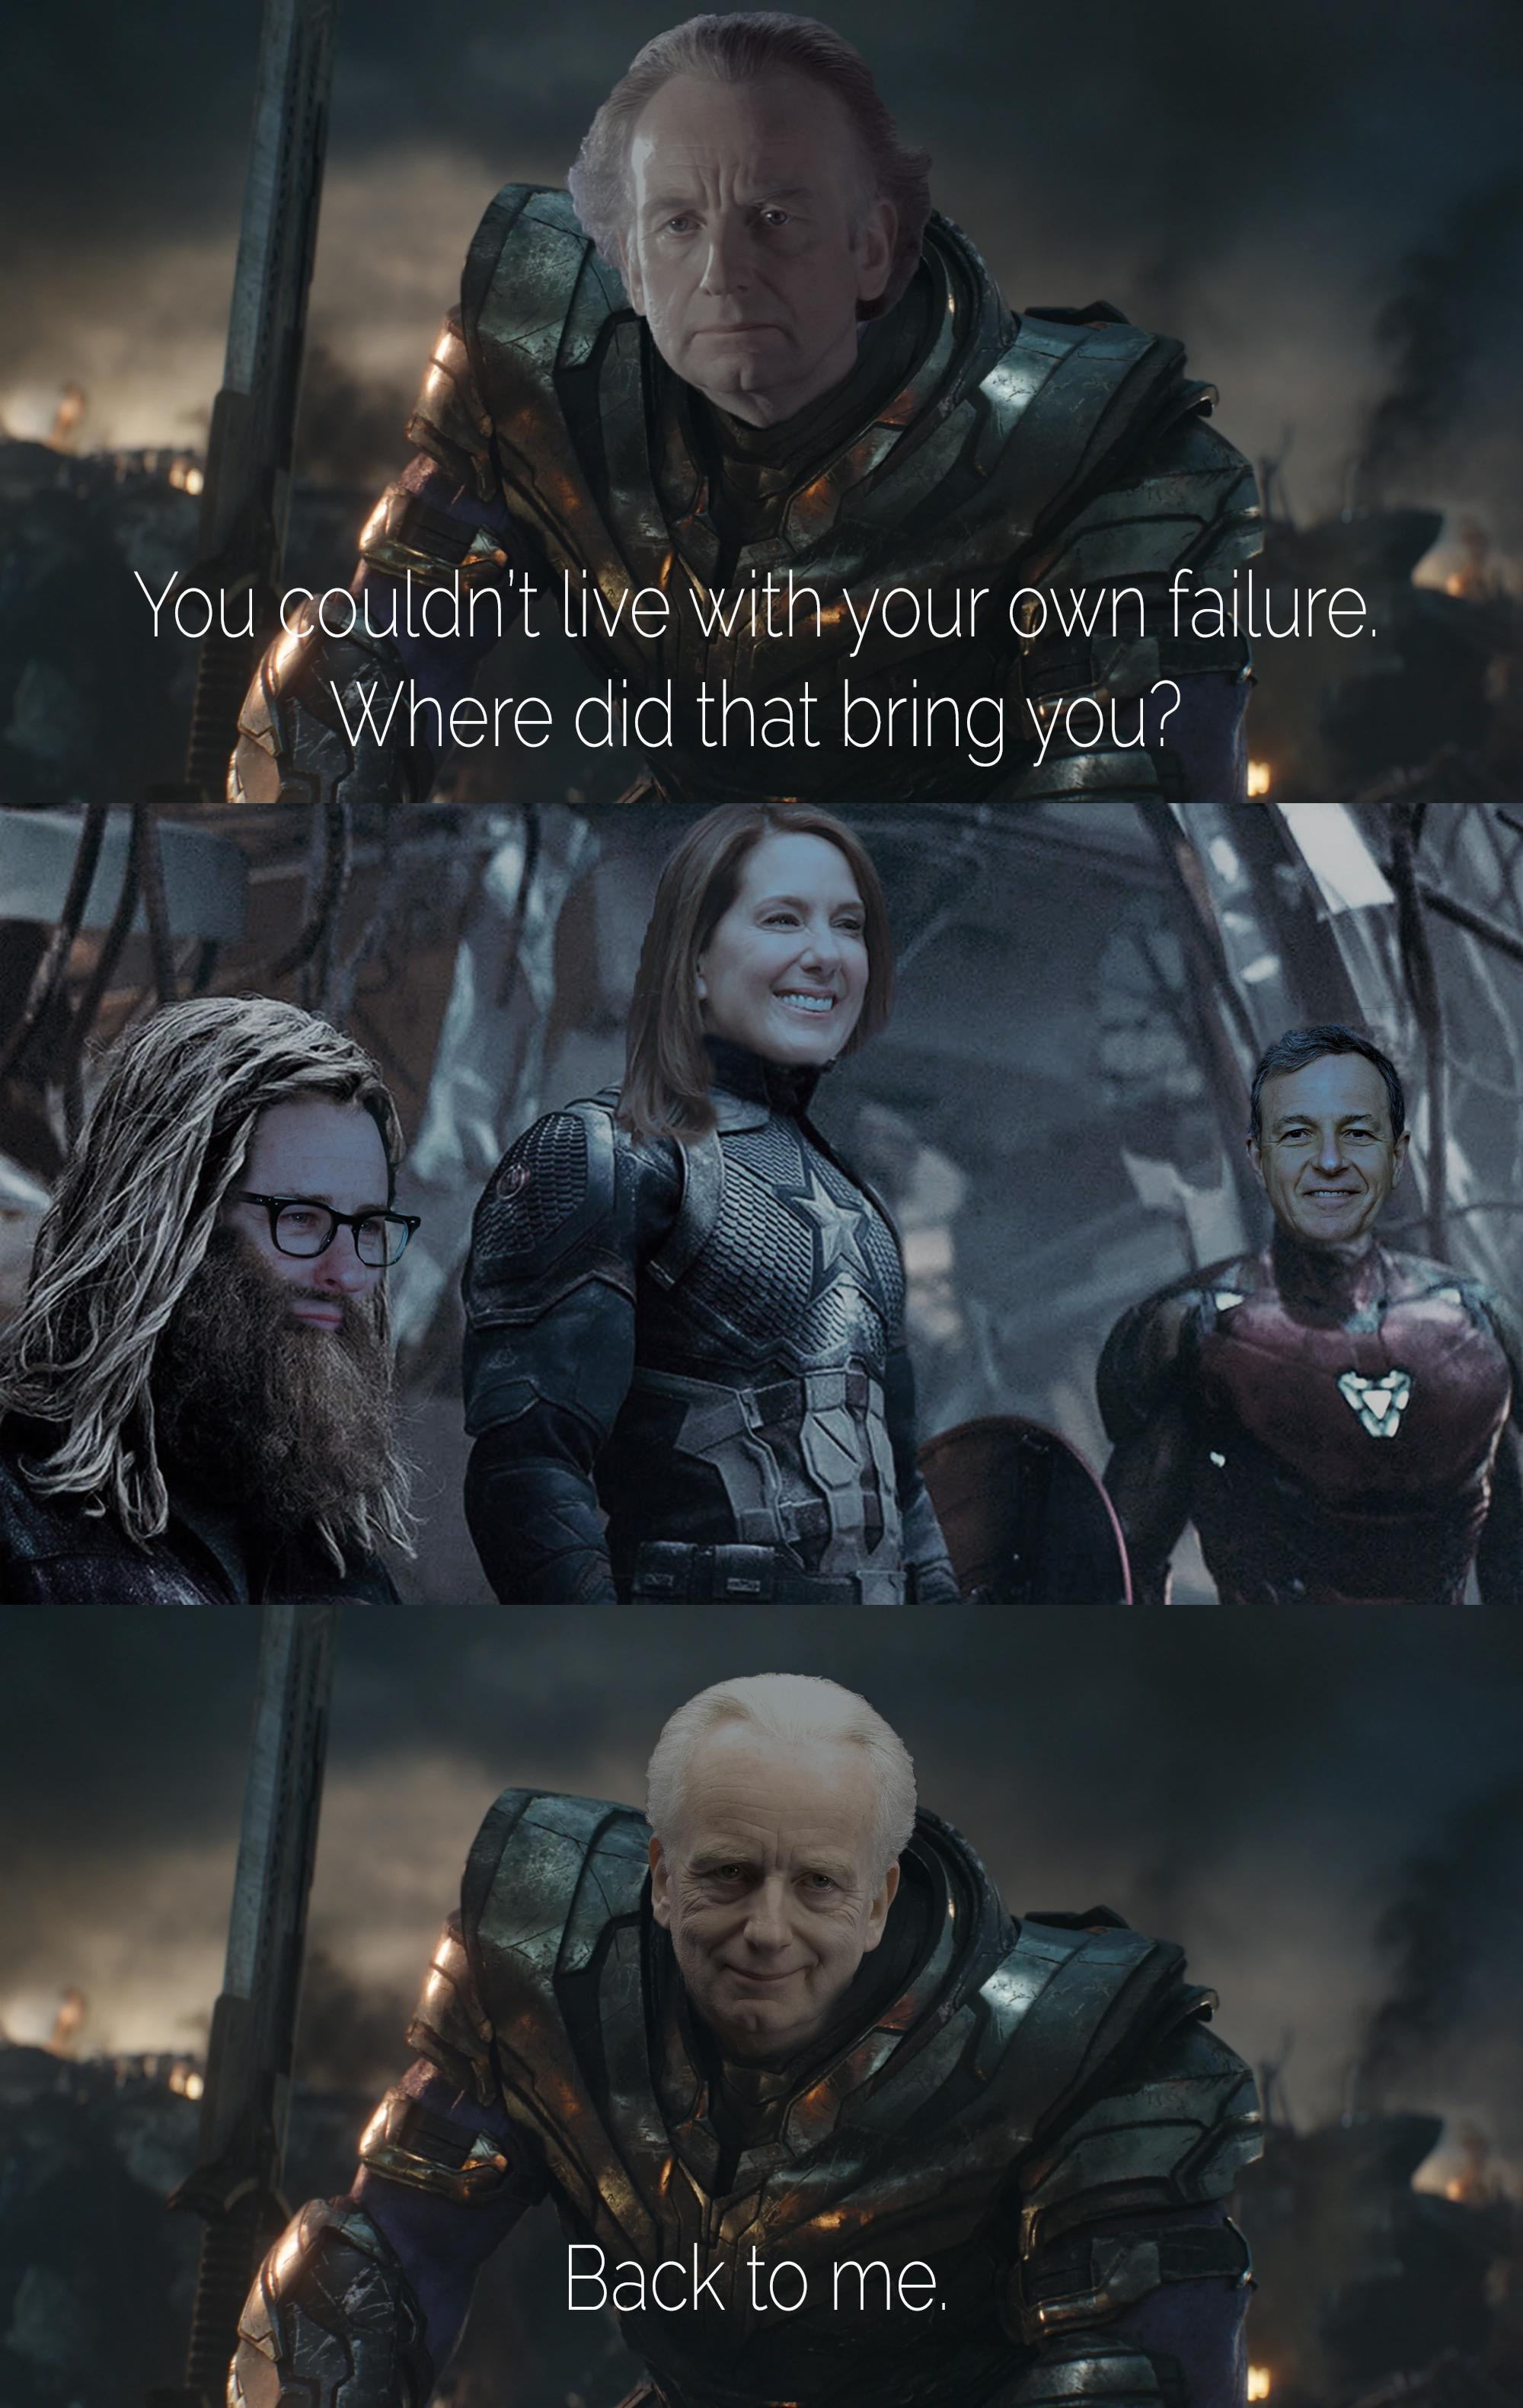 You Couldn T Live With Your Own Failure Meme : couldn, failure, Cost?, /r/PrequelMemes, Prequel, Memes